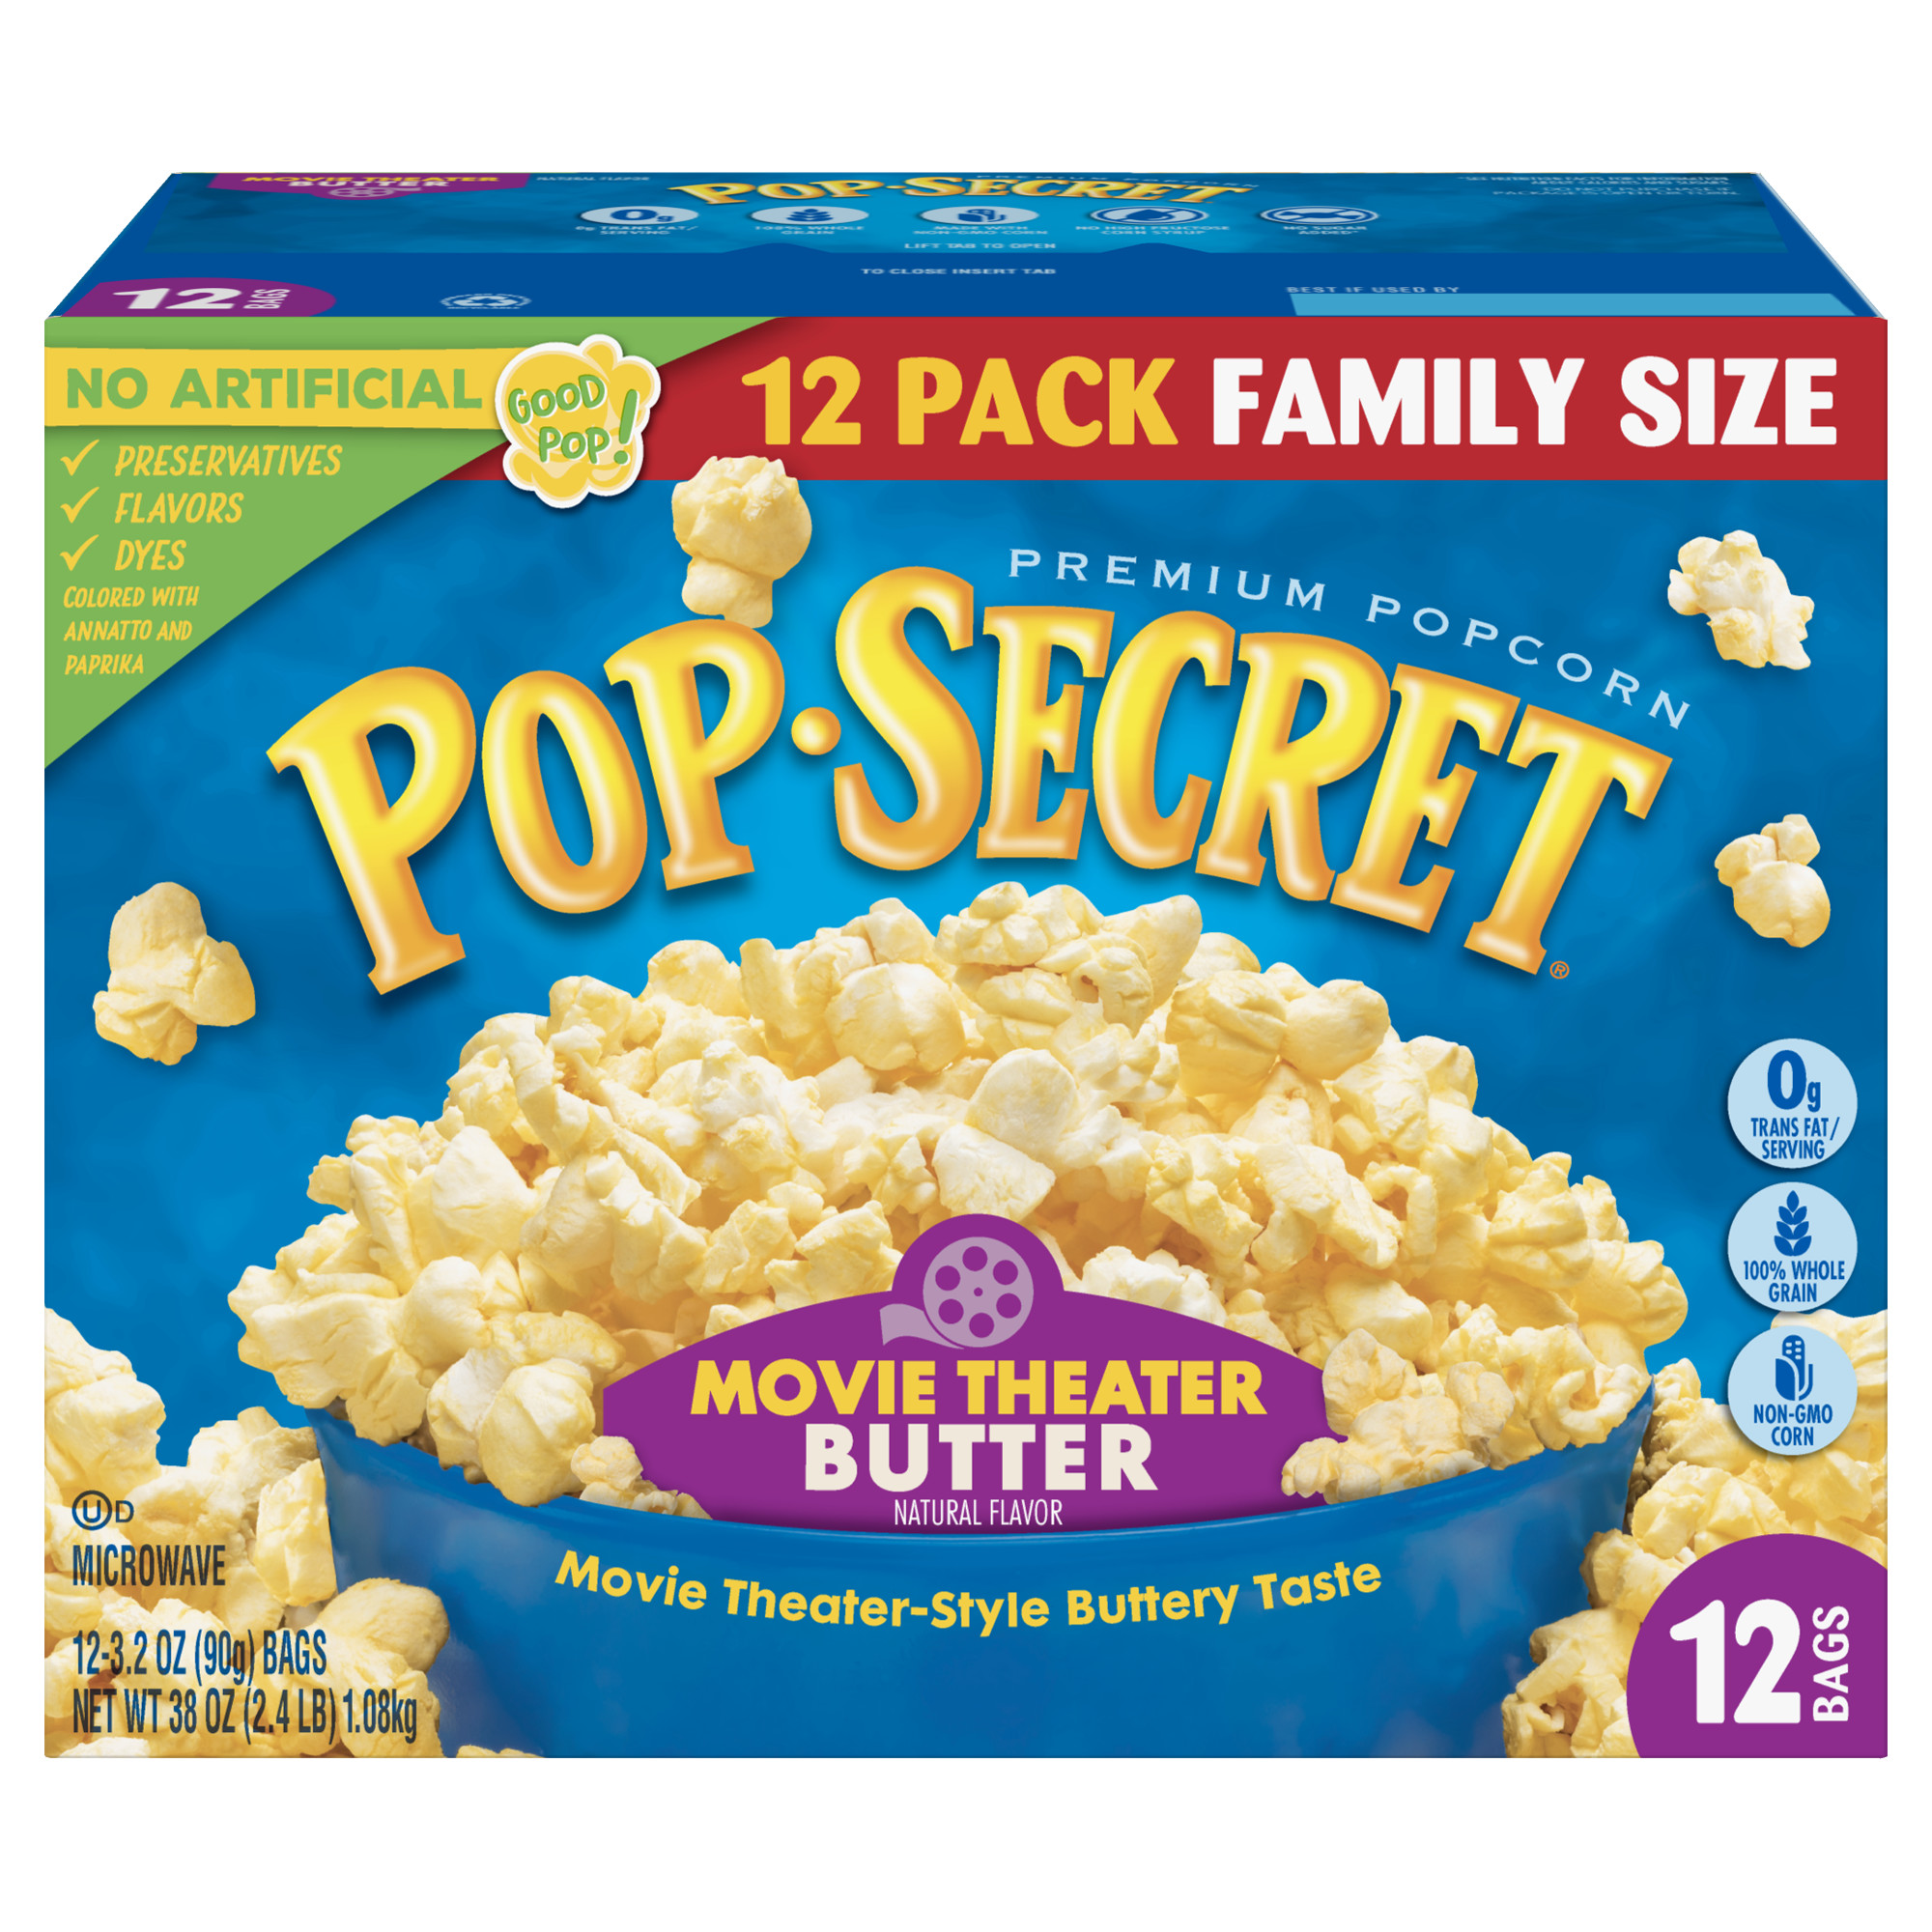 Pop Secret Microwave Popcorn Movie Theater Butter 3 2 Oz 12 Ct Walmart Com Walmart Com